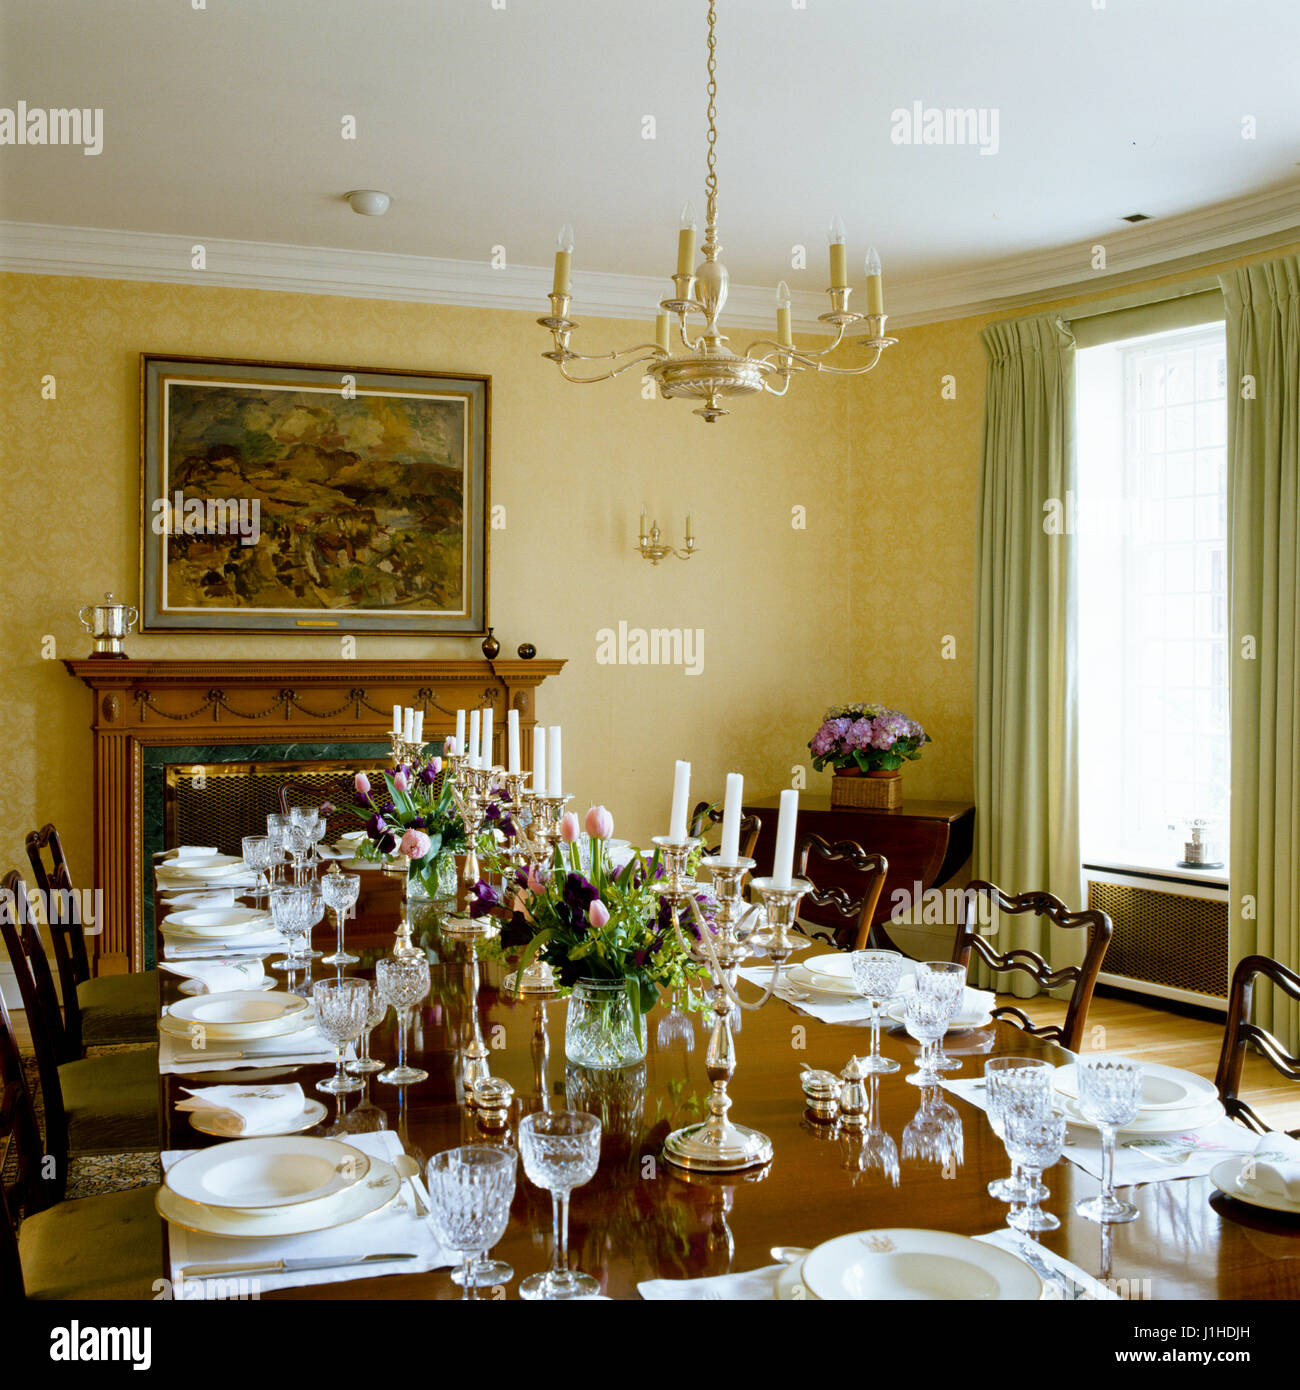 Edwardian Dining Room With Set Table